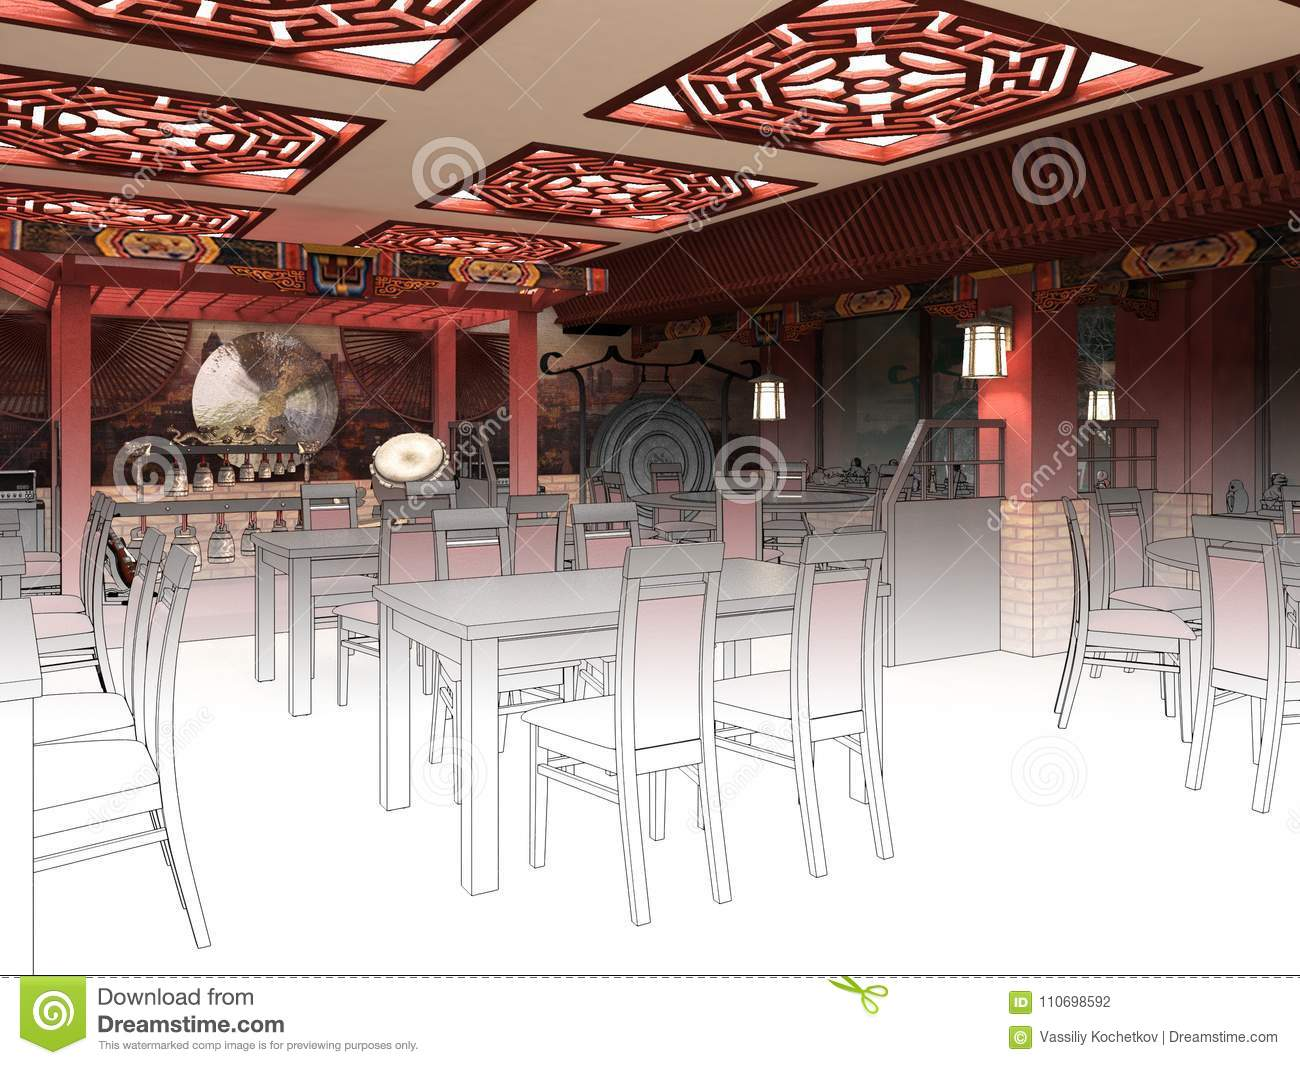 Render Black And White Sketch Of The Chinese Restaurant Interior Design Stock Illustration Illustration Of Plan Indoors 110698592